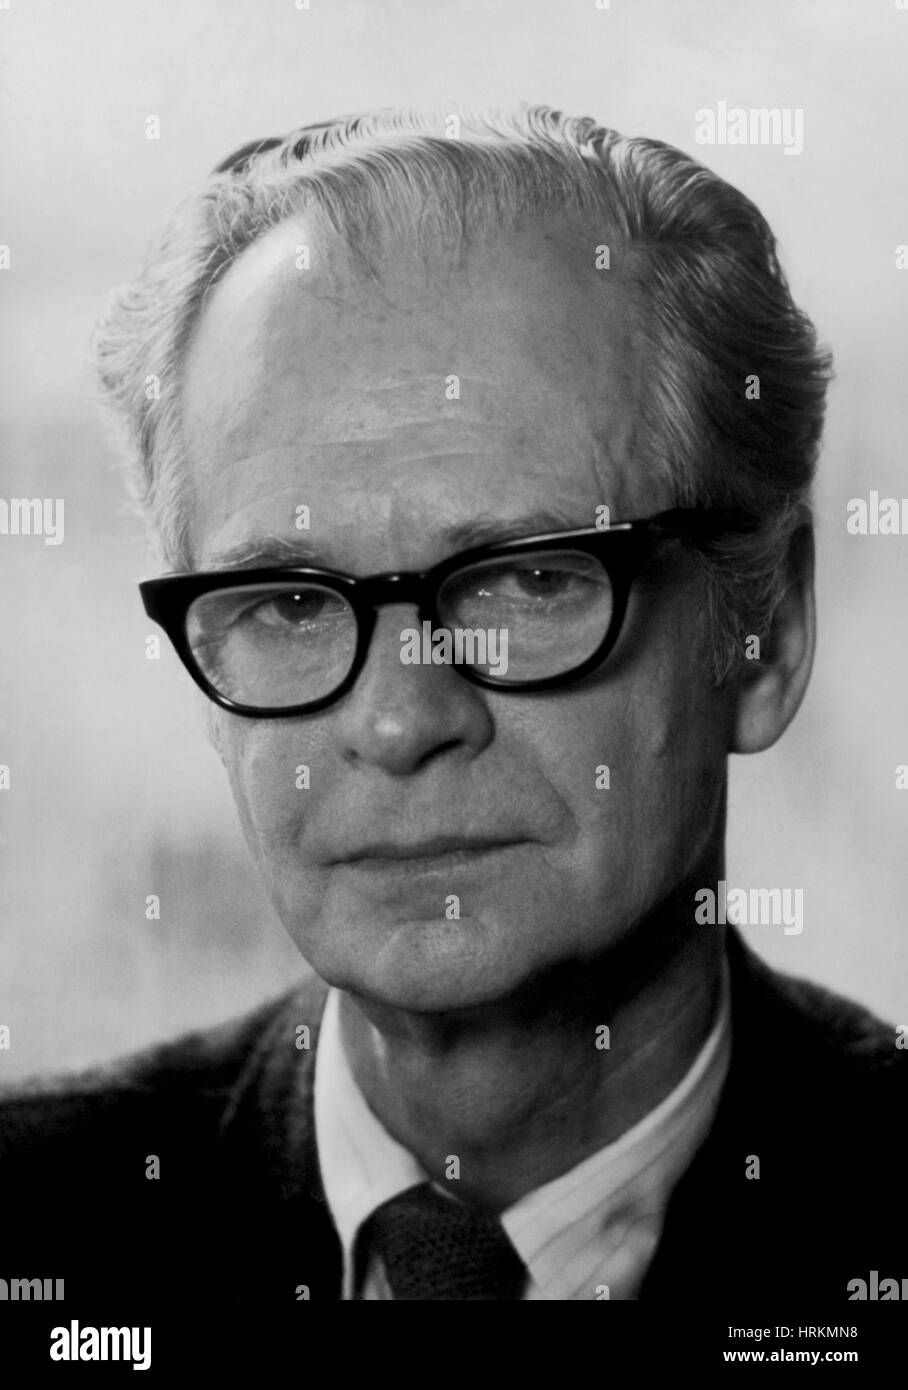 b f skinner Help us improve our author pages by updating your bibliography and submitting a new or current image and biography.